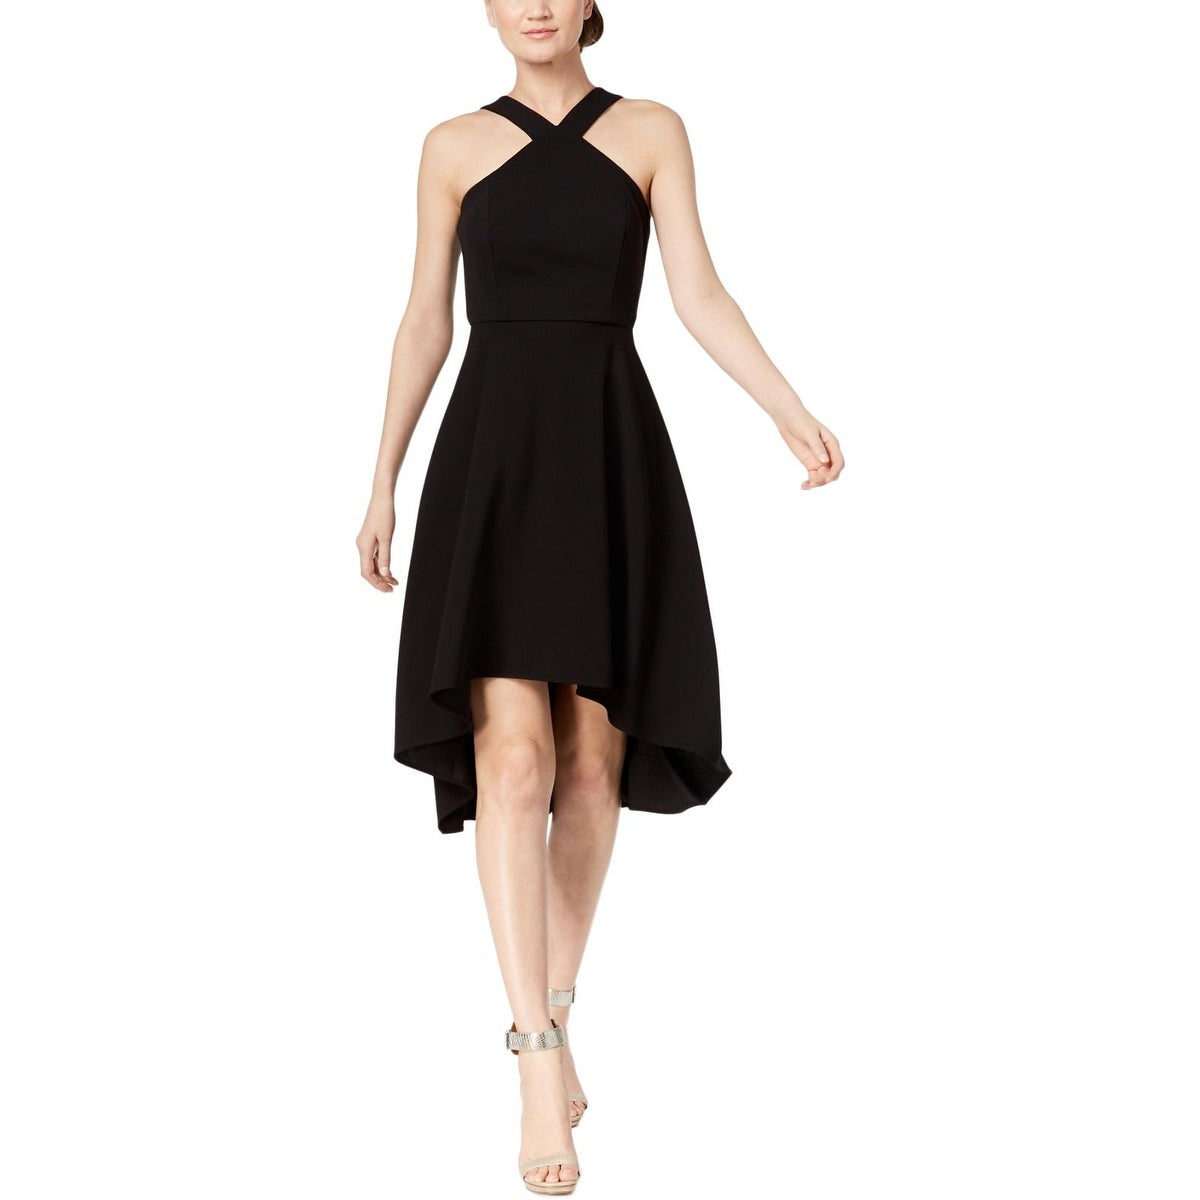 a356e7108f3 Calvin Klein Dresses | Find Great Women's Clothing Deals Shopping at  Overstock